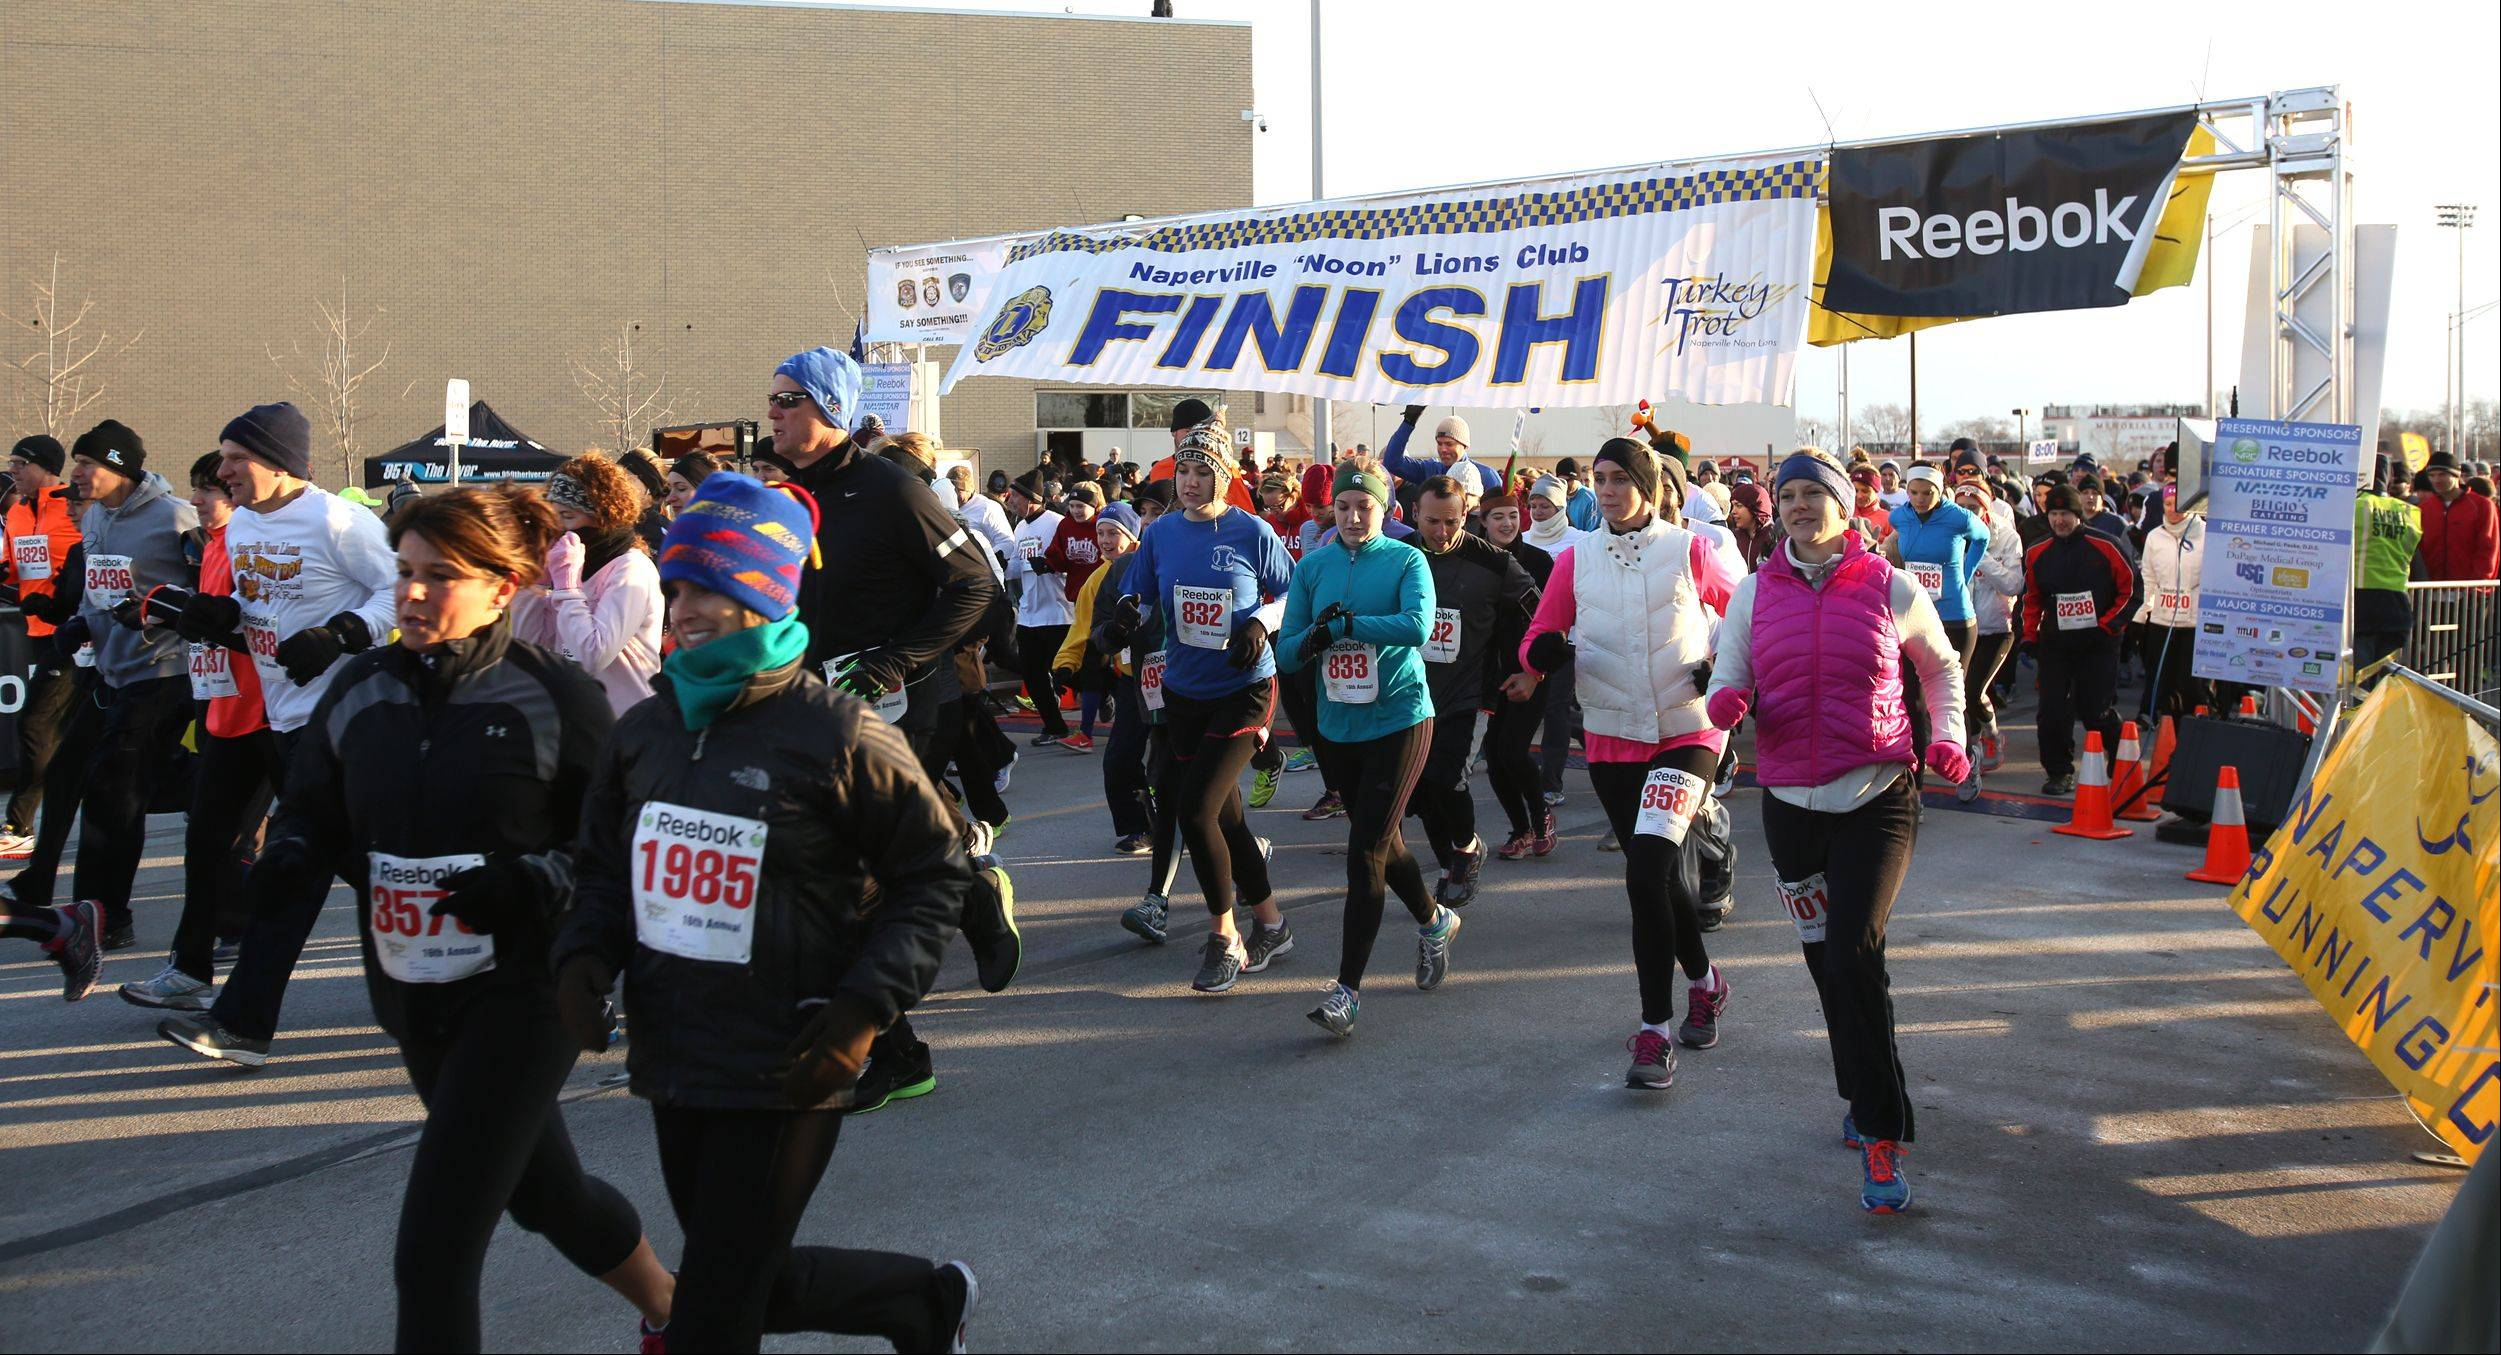 The starting line was crowded as 7,500 runners participated in the 16th annual Naperville Noon Lions 5K Turkey Trot Thursday morning.